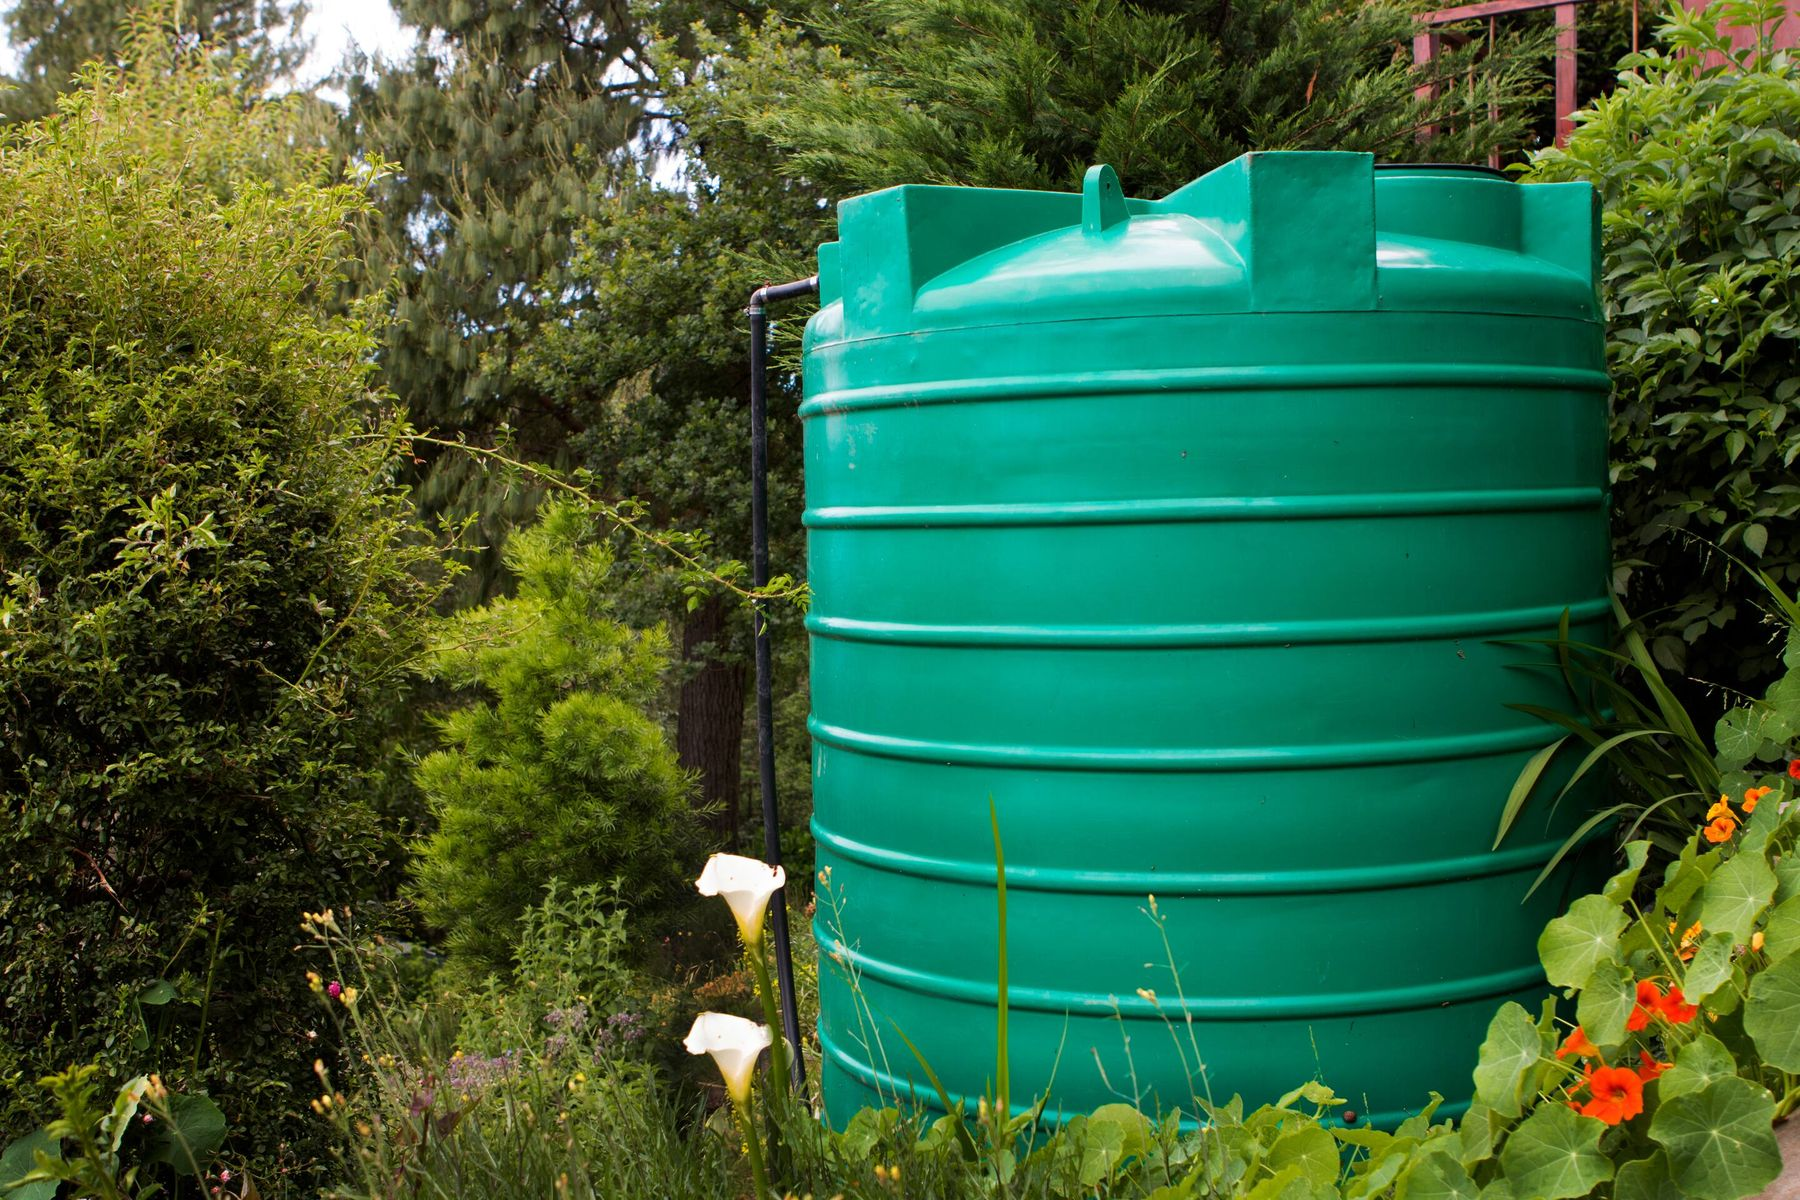 Easy Method to Clean your Outdoor Water Tank